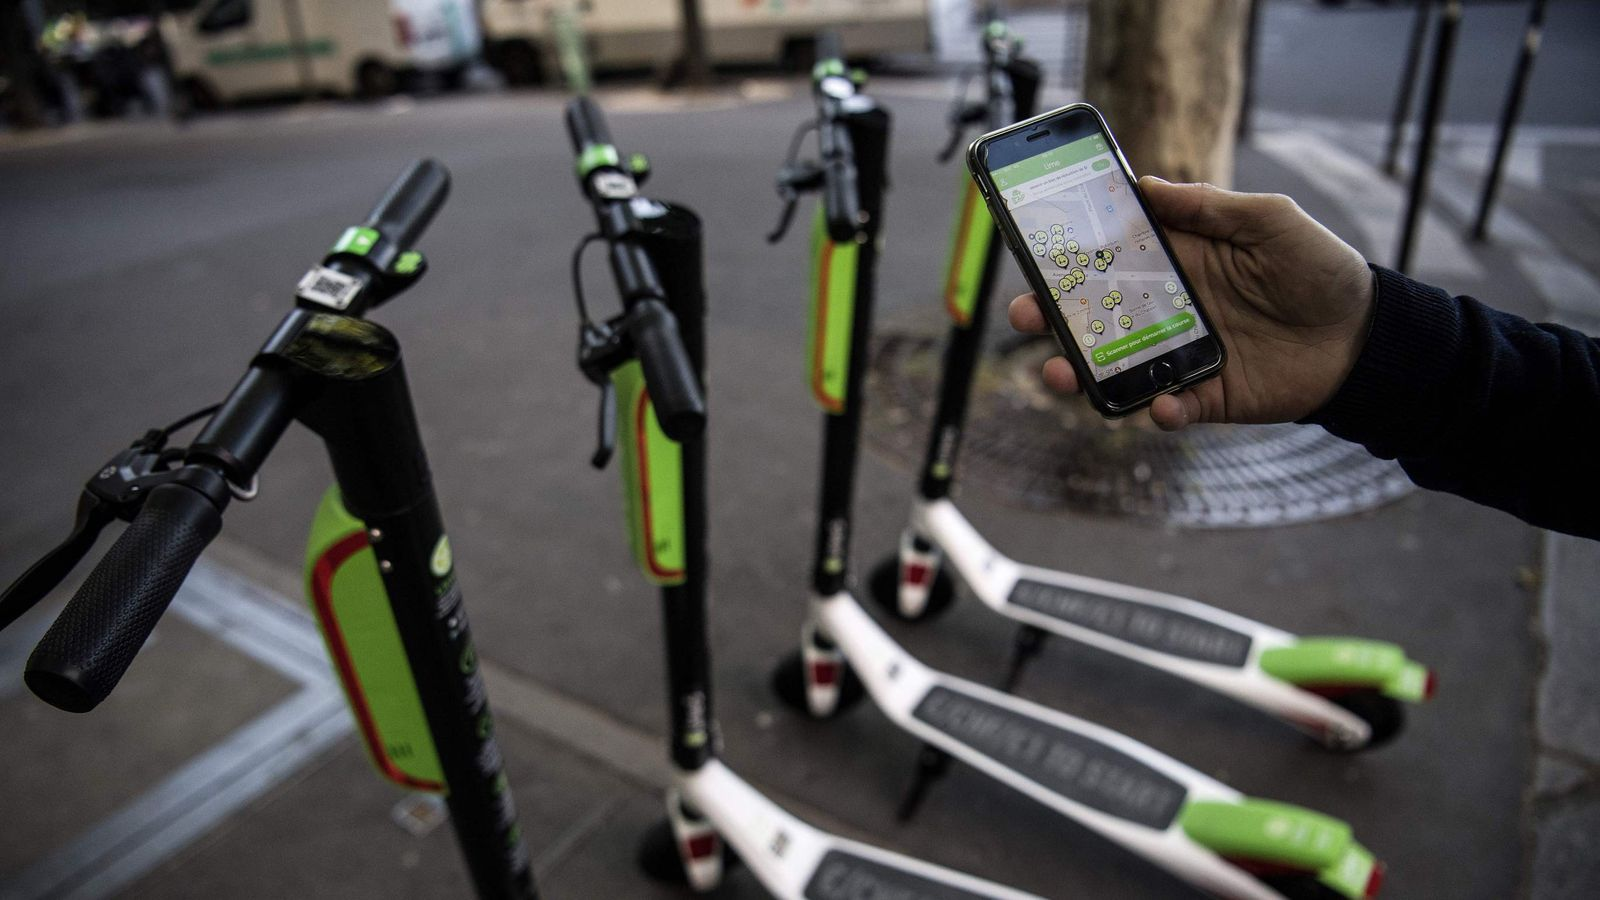 e scooter start up lime raises 232m from uber and. Black Bedroom Furniture Sets. Home Design Ideas